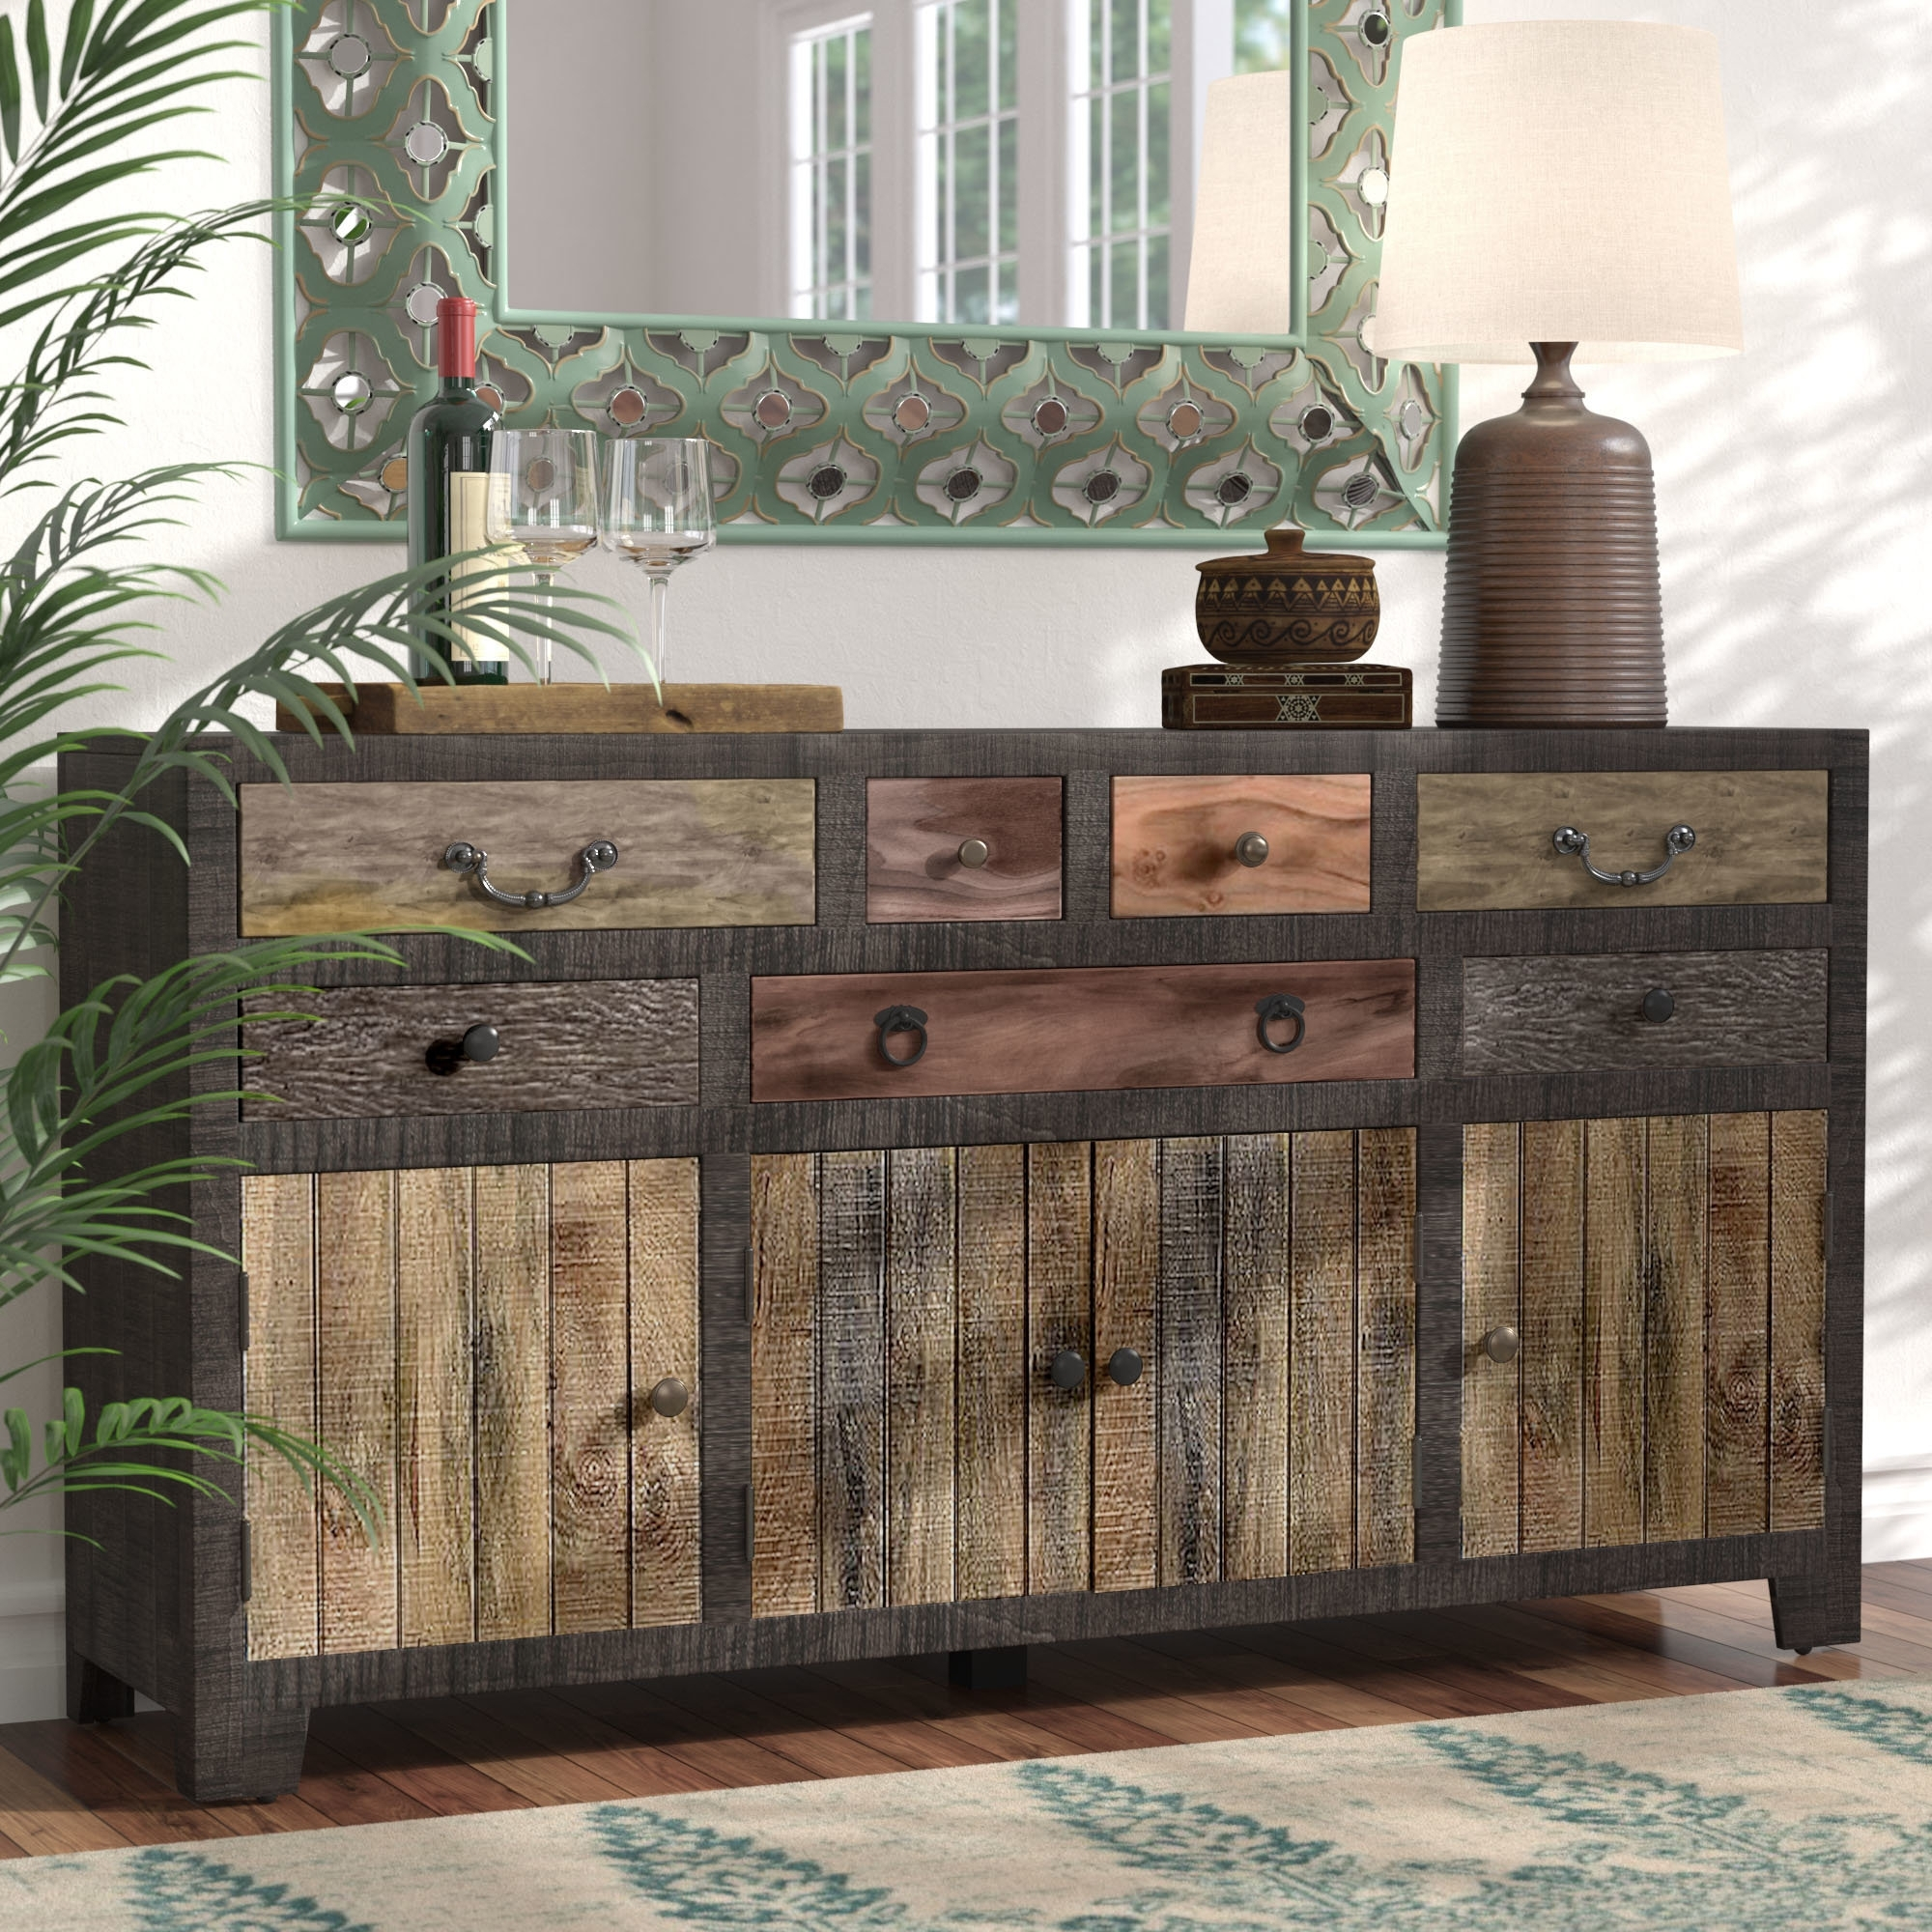 World Menagerie Moultry 7 Drawer 4 Door Sideboard & Reviews | Wayfair with 4-Door/4-Drawer Metal Inserts Sideboards (Image 30 of 30)